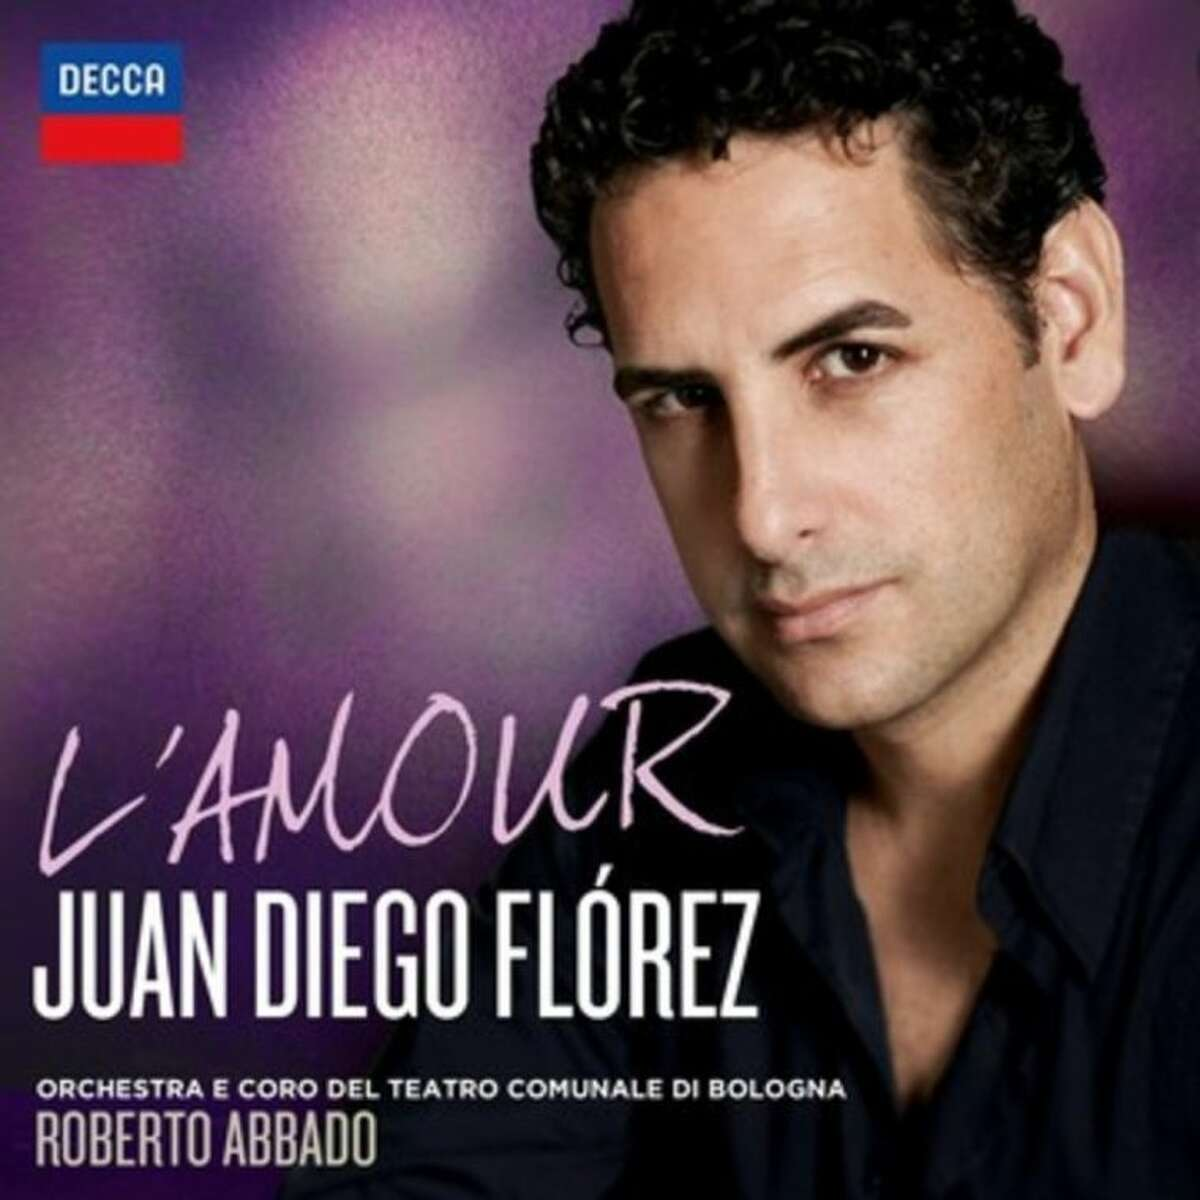 """This CD cover image released by Decca shows """"L'Amour,"""" by Juan Diego Florez. (AP Photo/Decca)"""